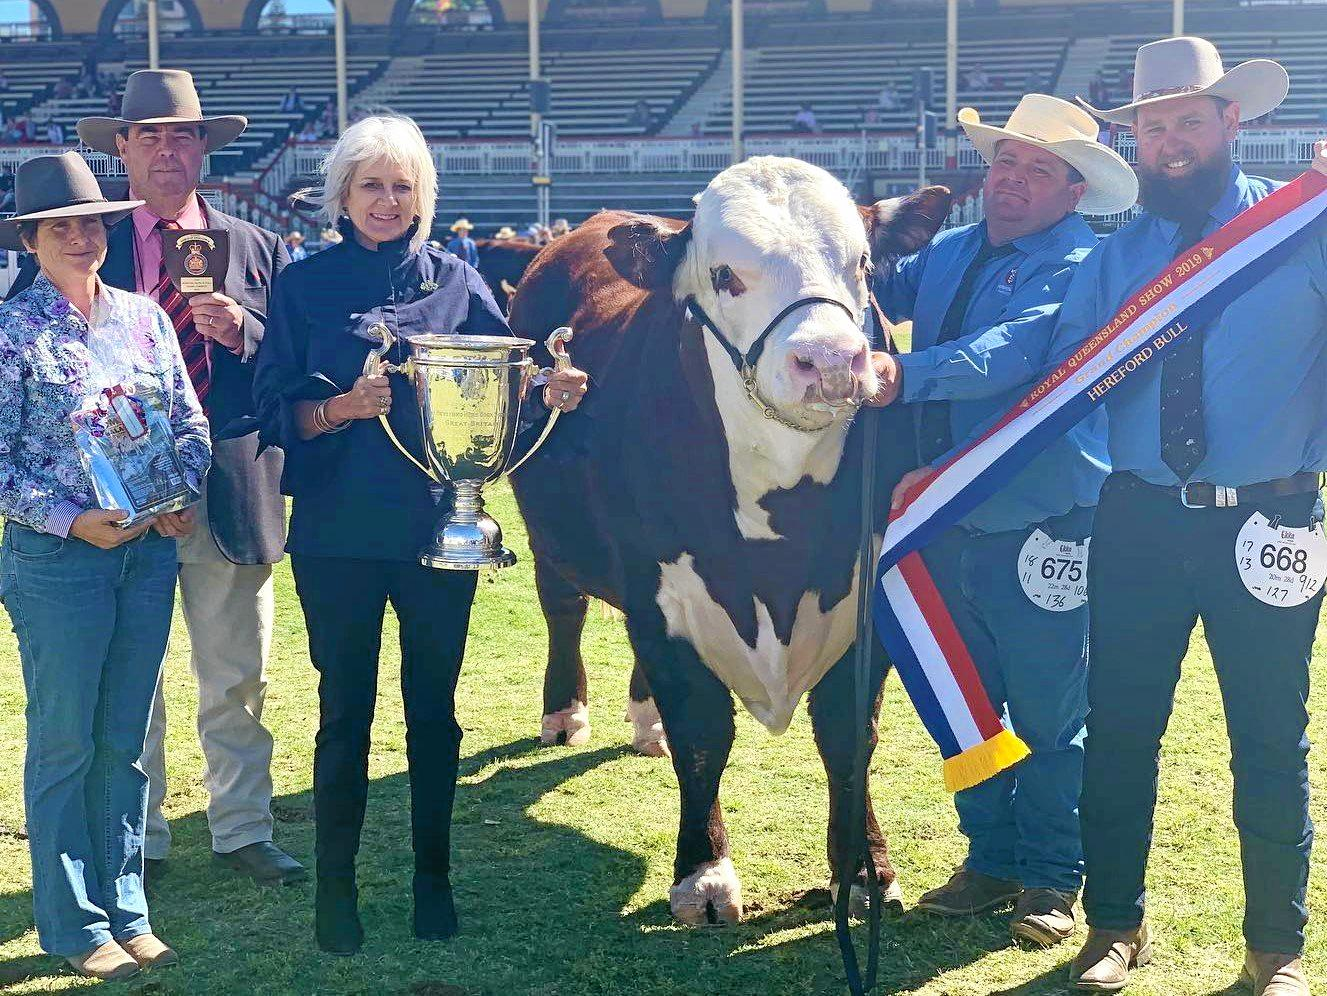 HEREFORD HEROES: Grand champion bull, Advance N142 with Isaac Billiau and Tom Nixon (end right) from Devon Court Beef, Drillham.